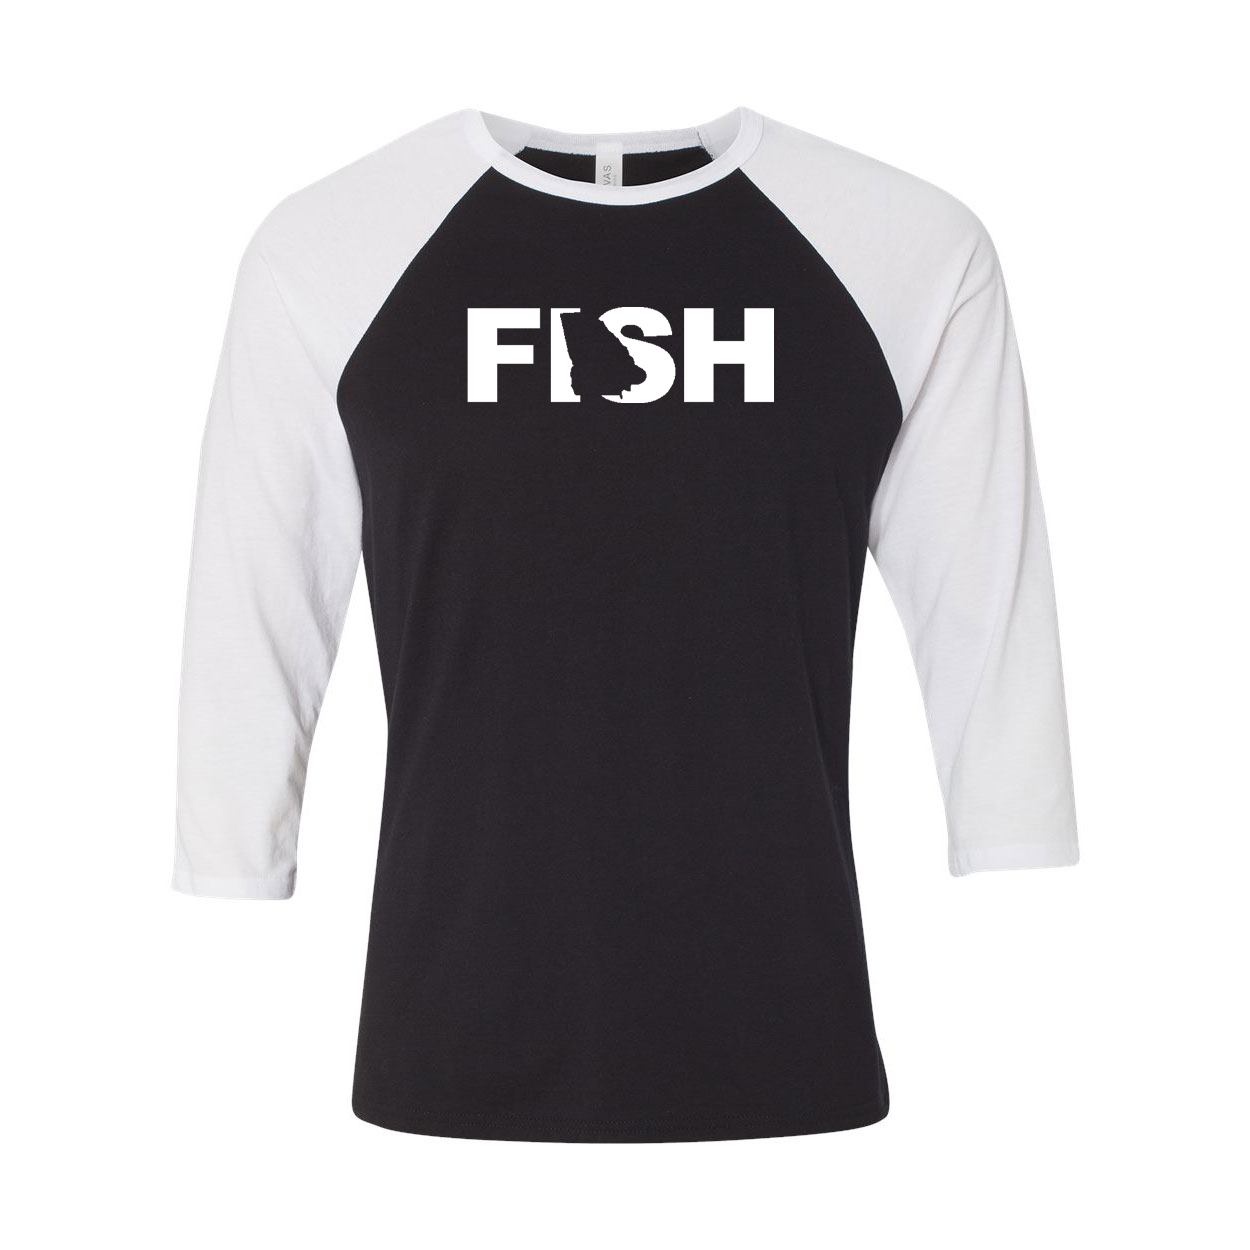 Fish Georgia Classic Raglan Shirt Black/White (White Logo)